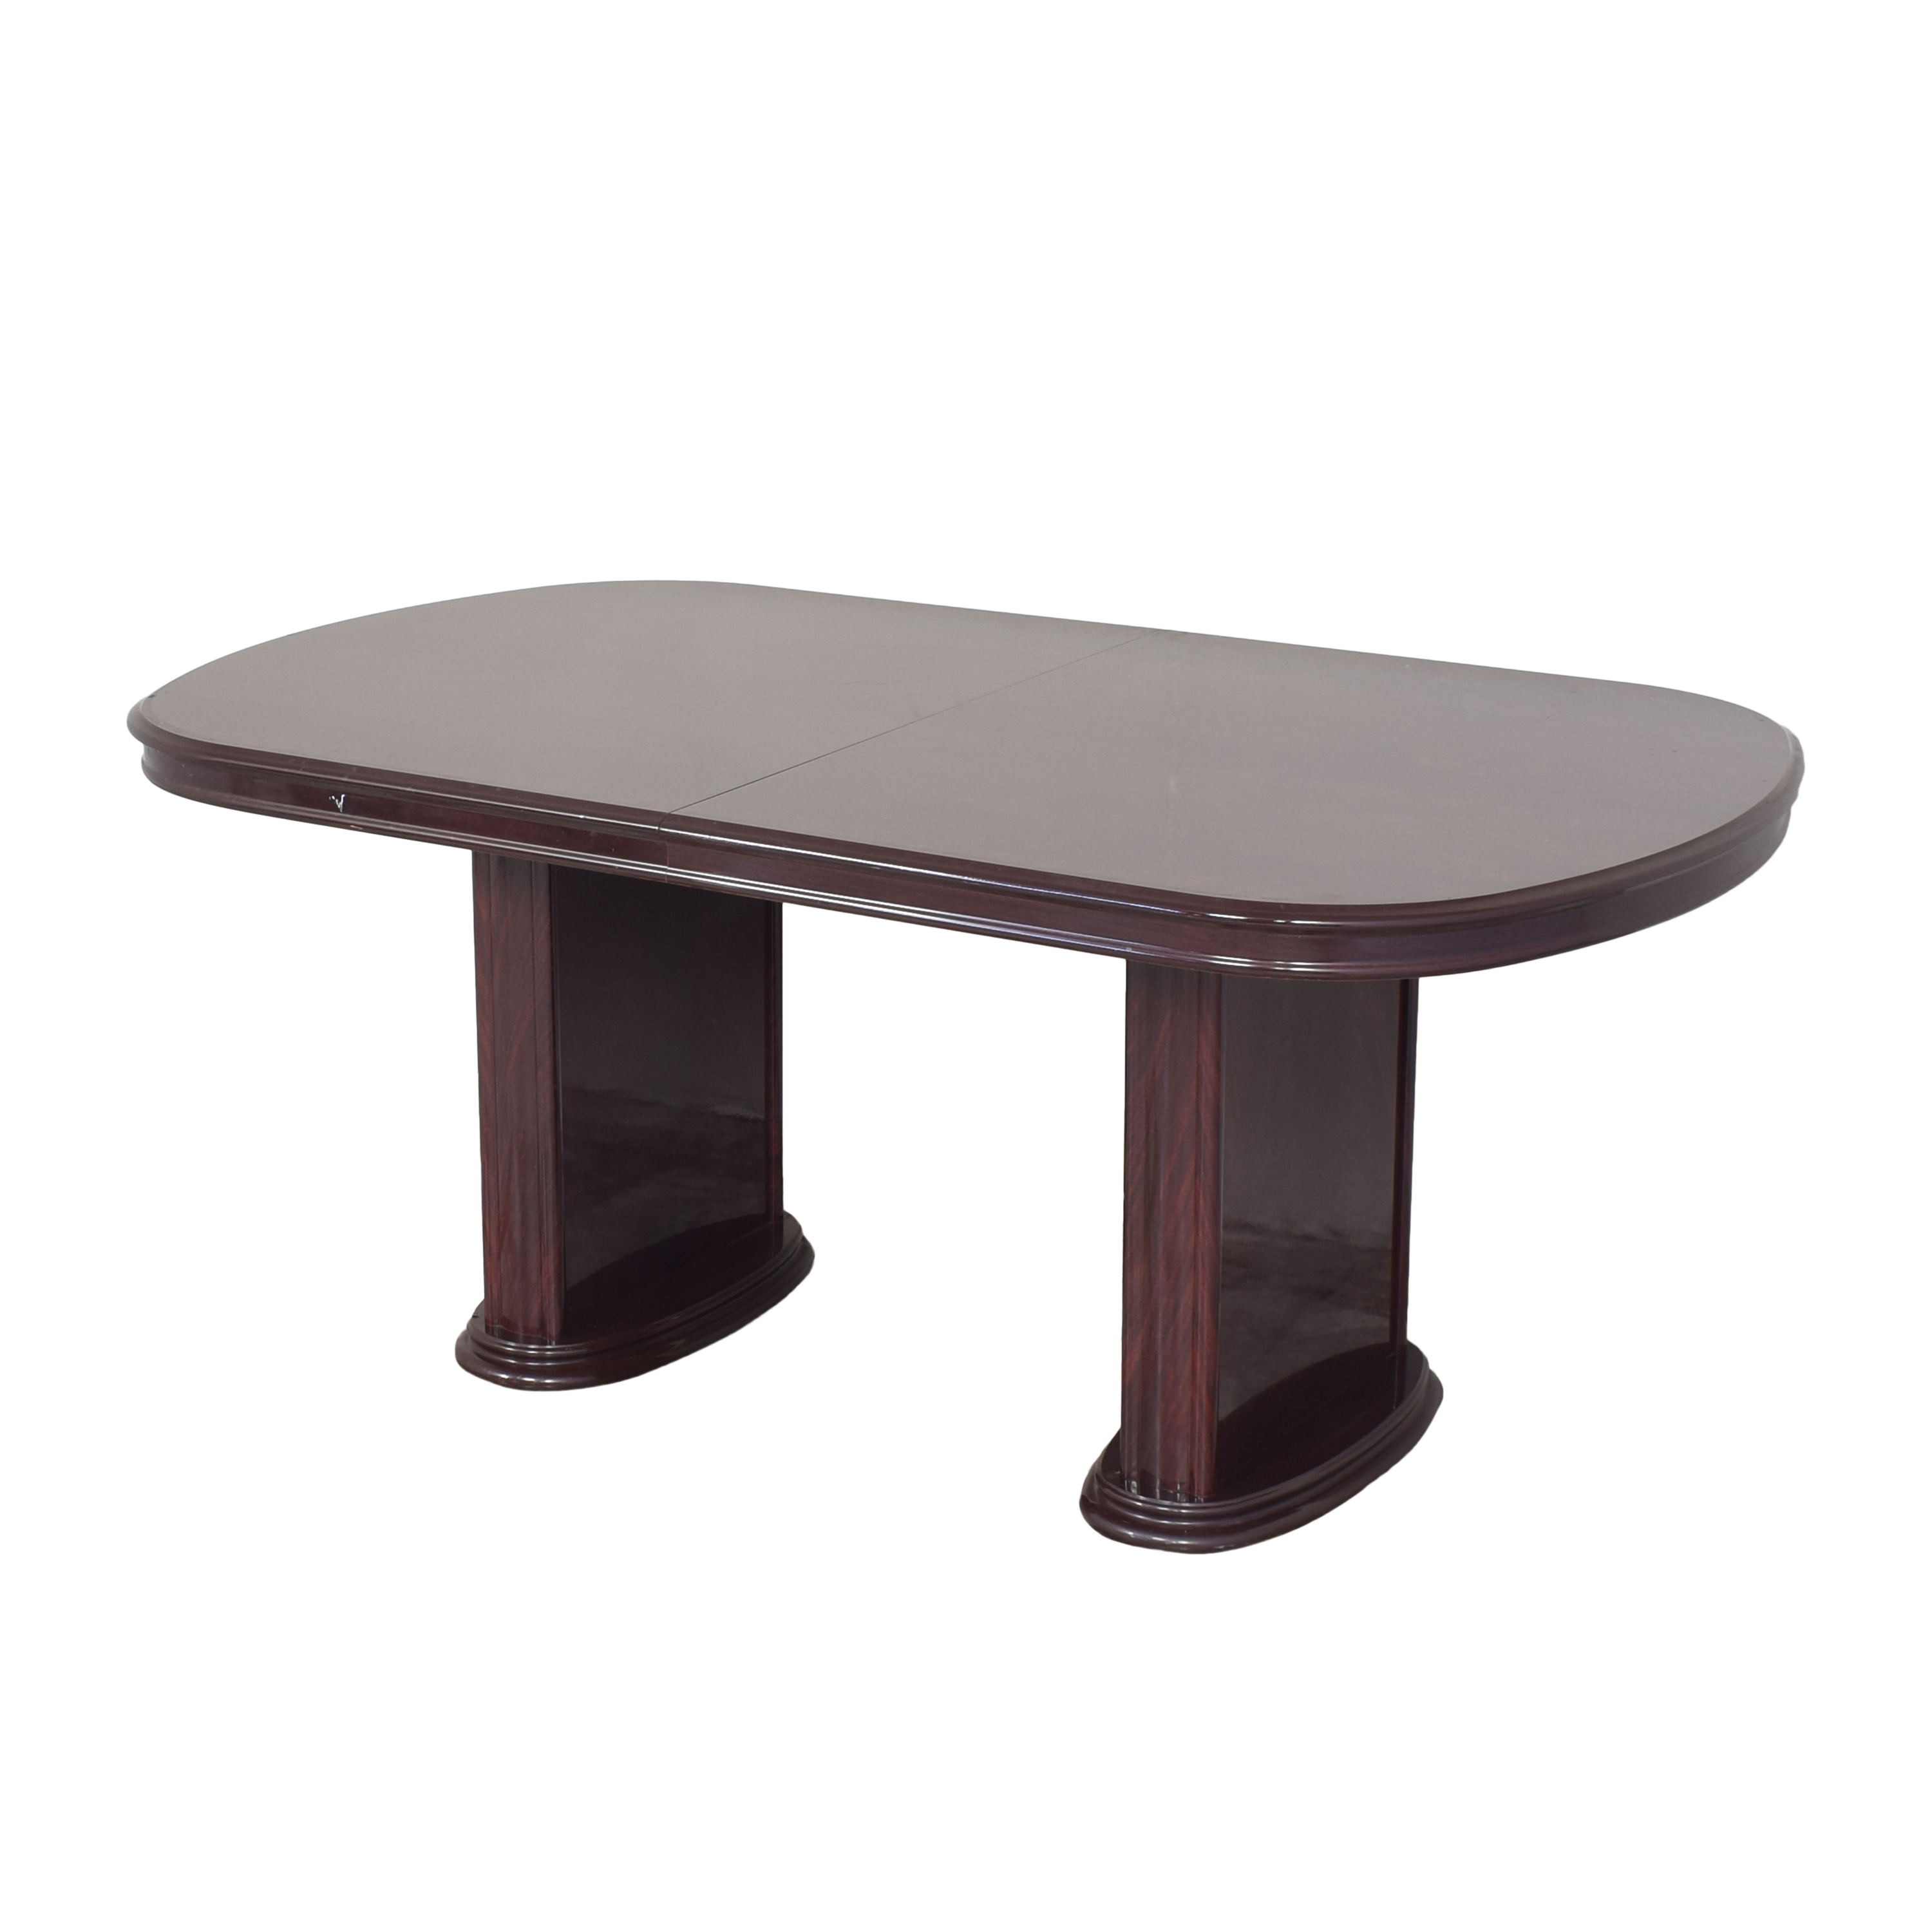 buy Raymour & Flanigan Two Pedestal Dining Table Raymour & Flanigan Tables